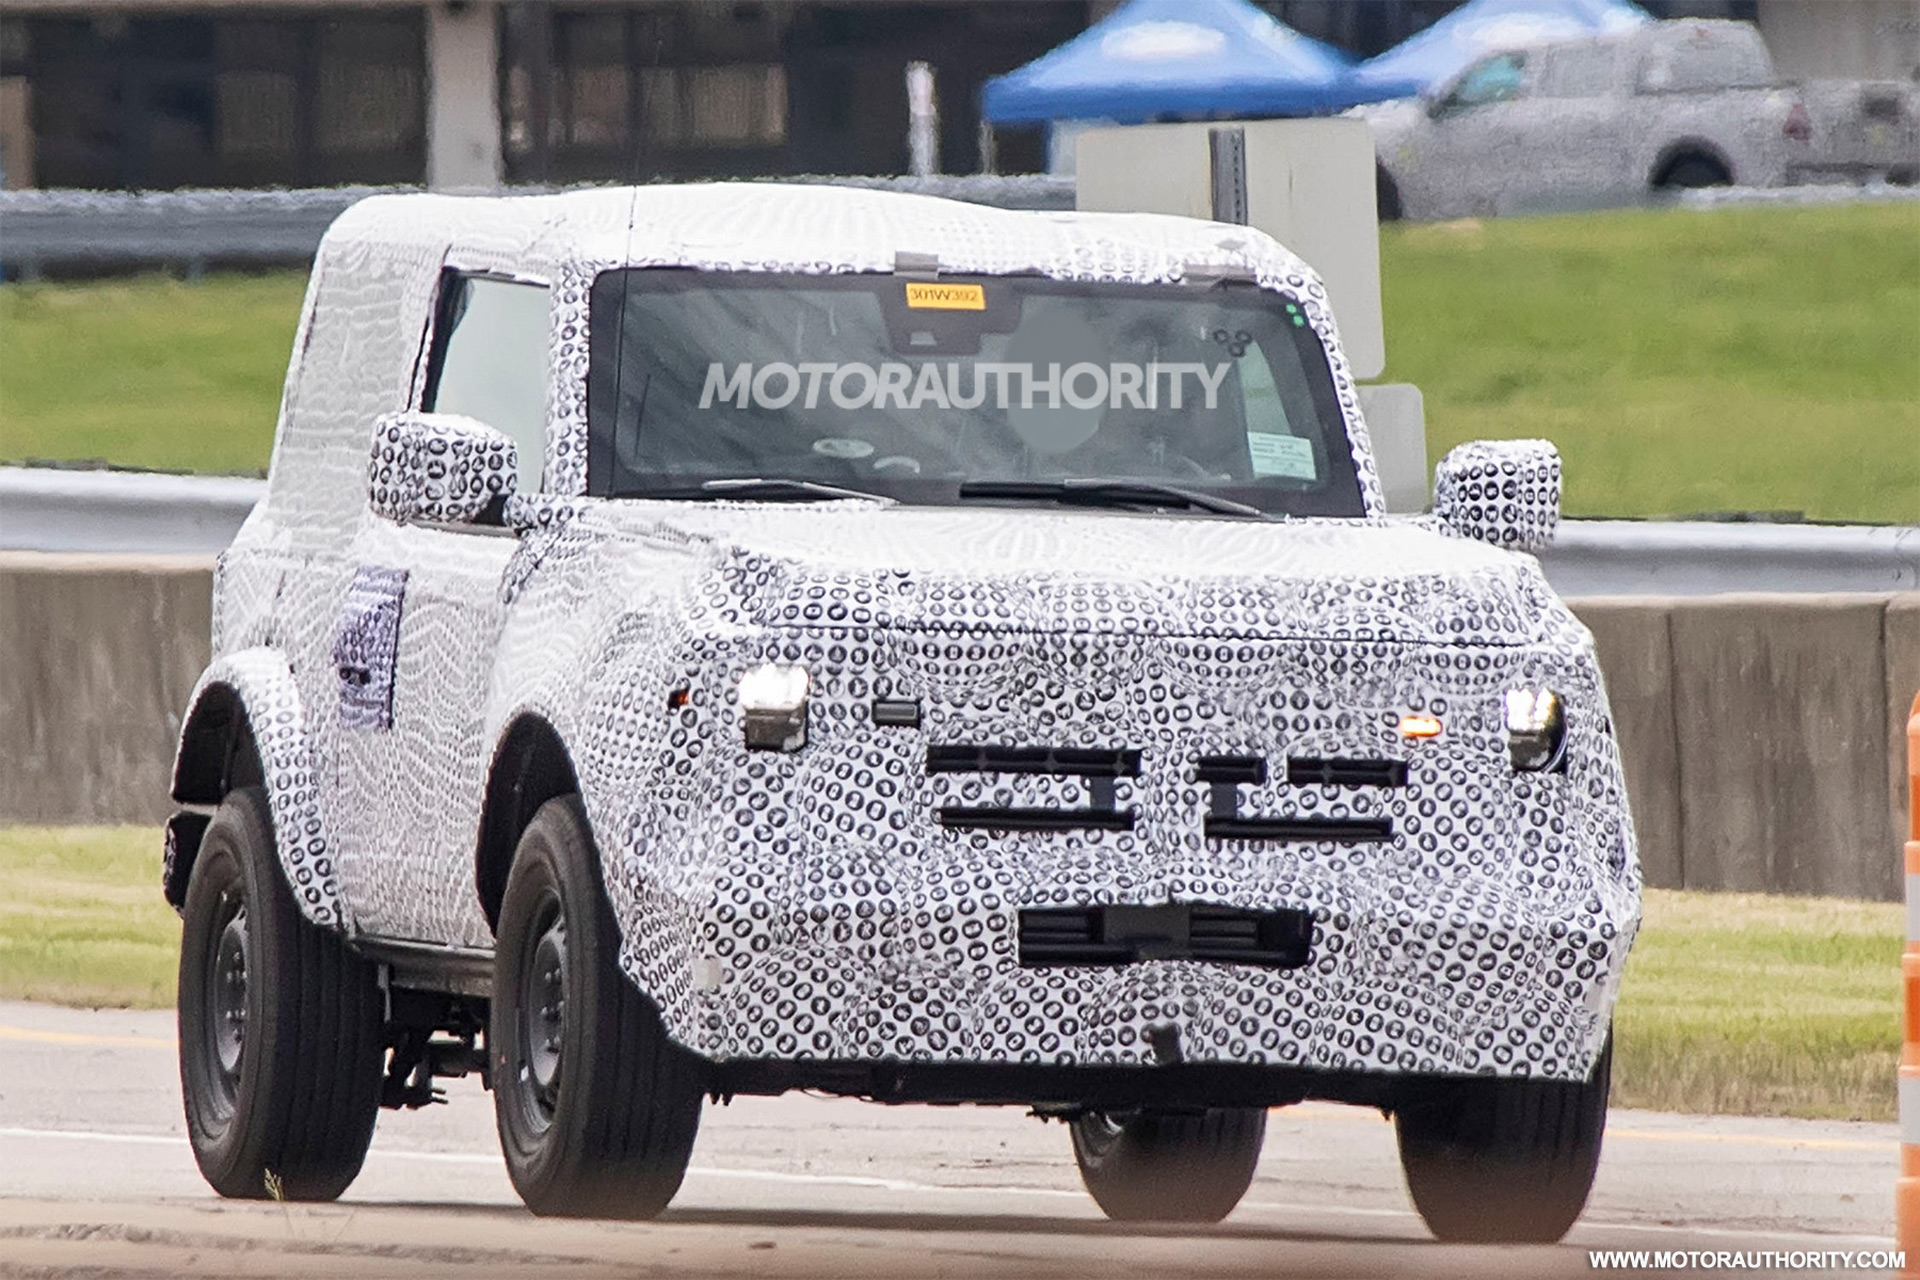 Ford keeps teasing us with pics and short clips of its revived Bronco model now scheduled to debut on July 13, 2020.